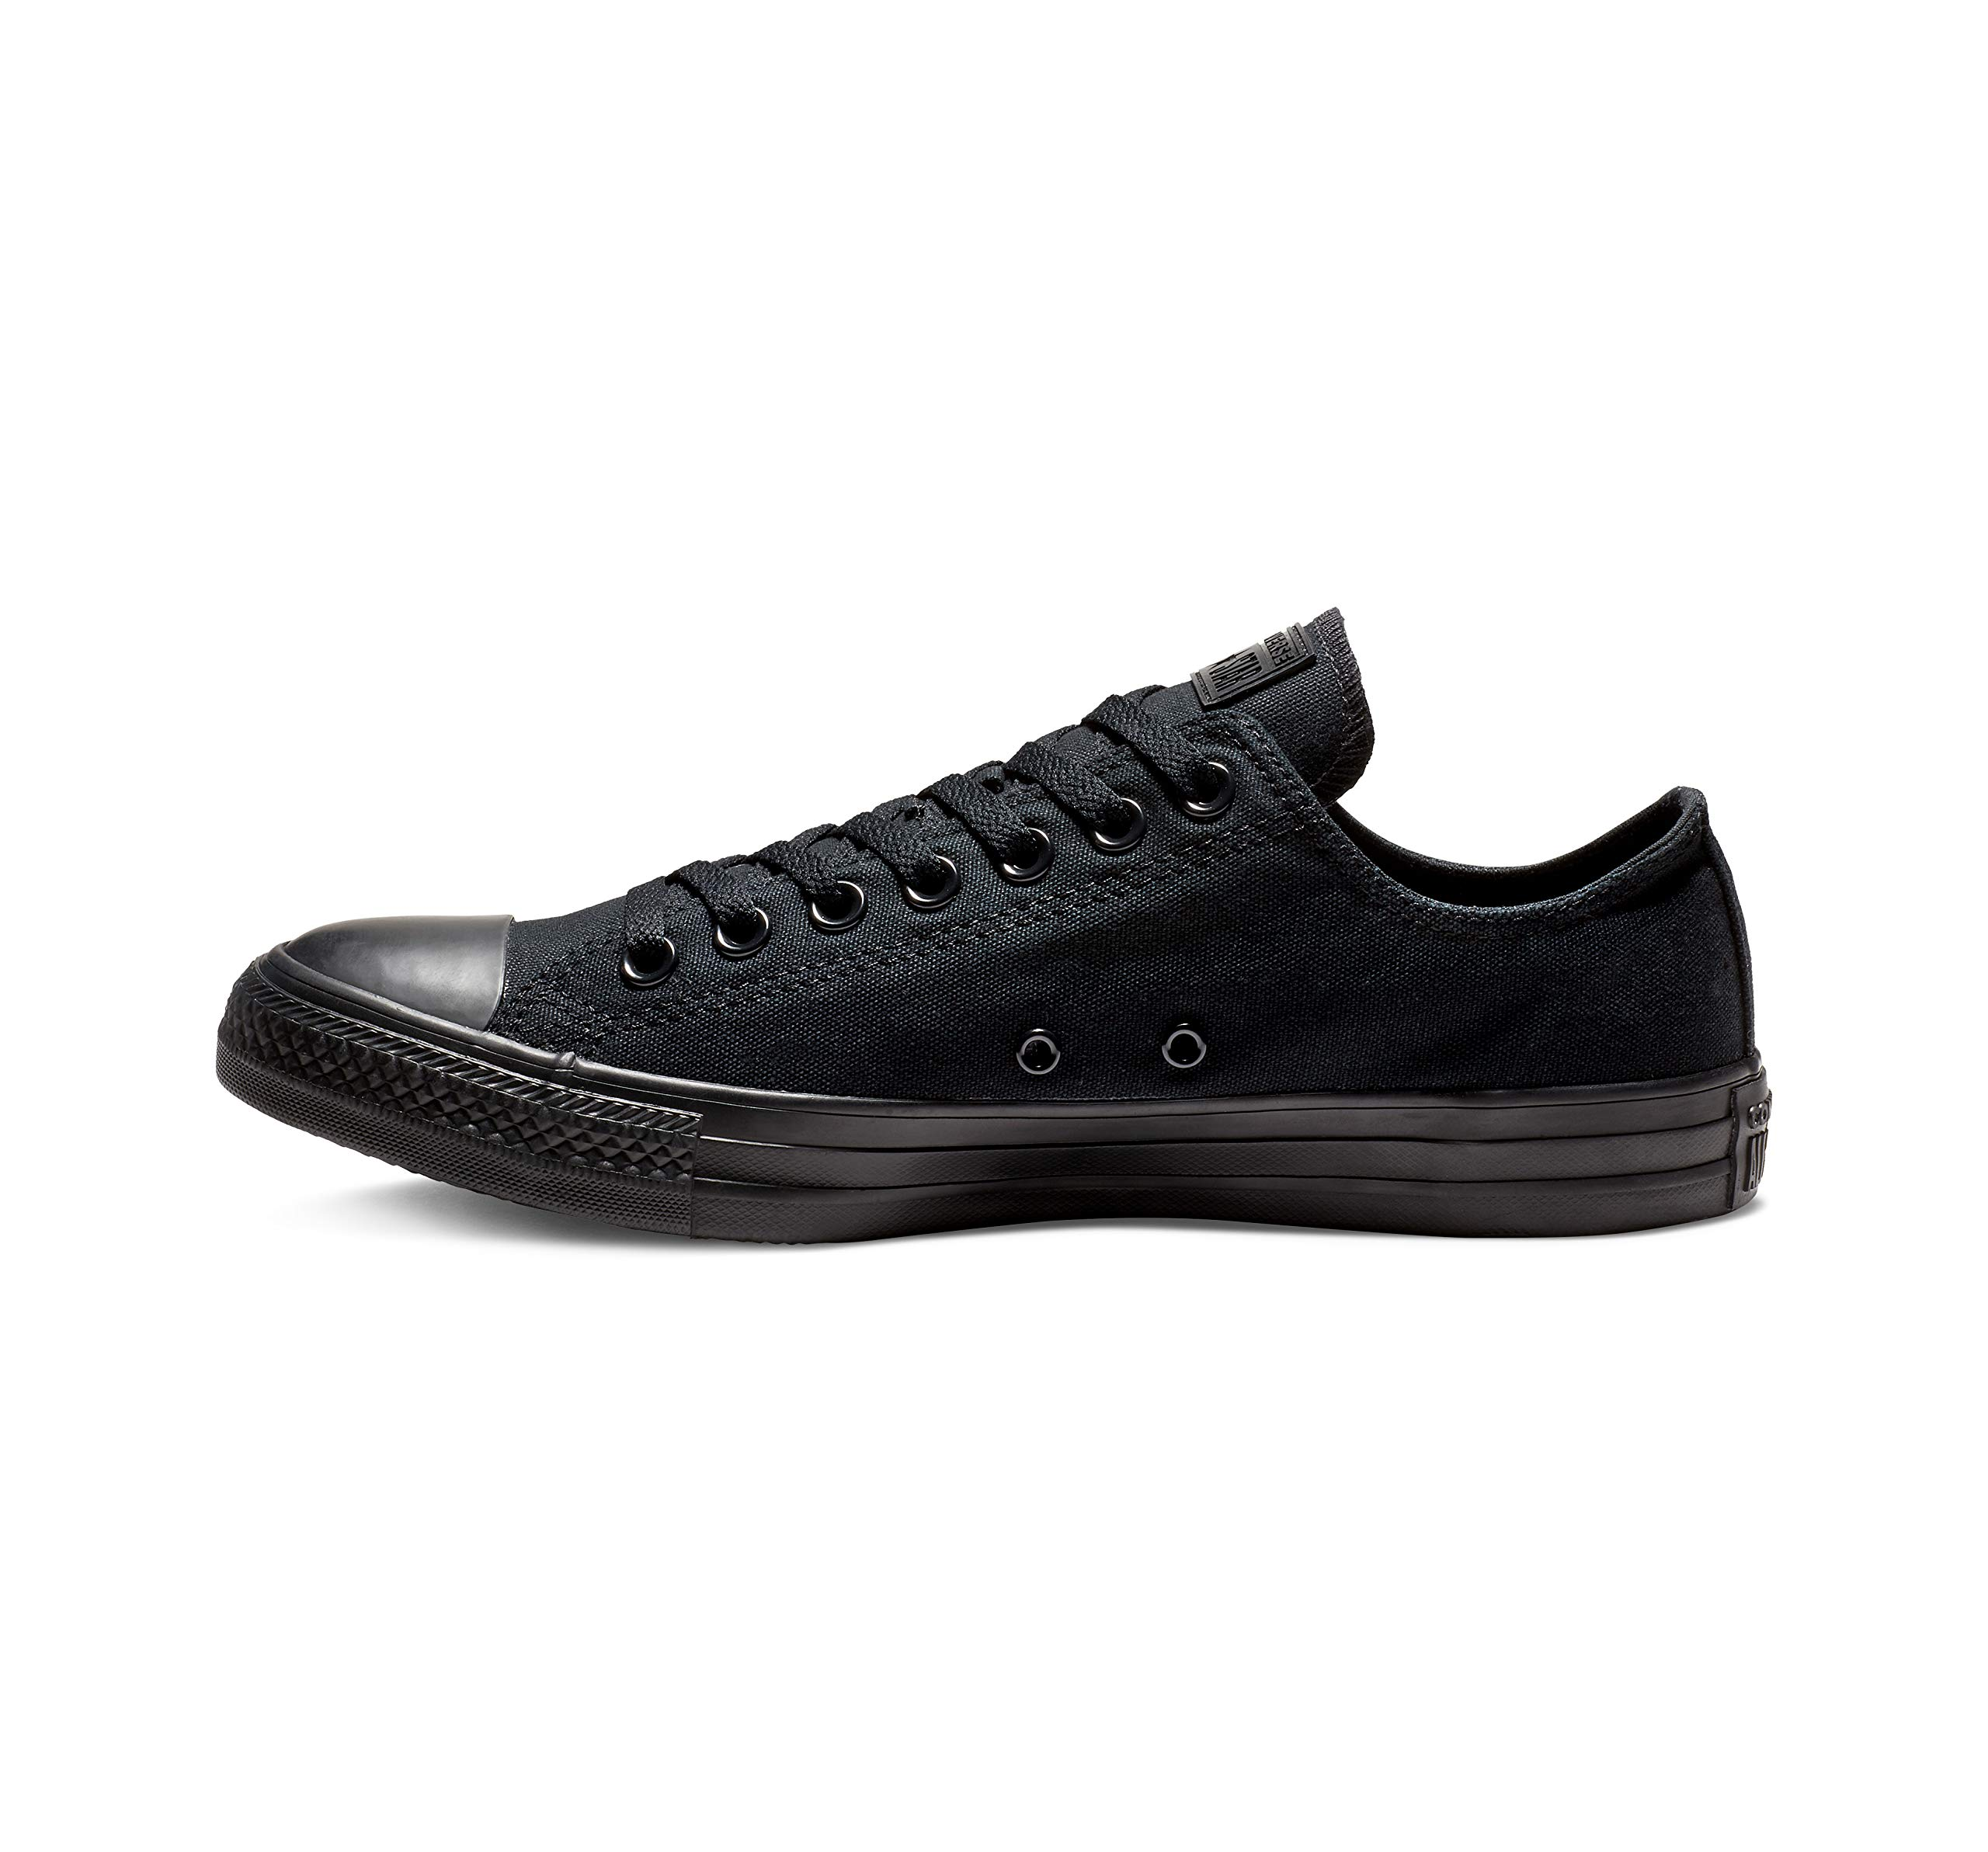 Converse Unisex Chuck Taylor All Star Low Top Black Monochrome Sneakers - 9 D(M) US by Converse (Image #1)